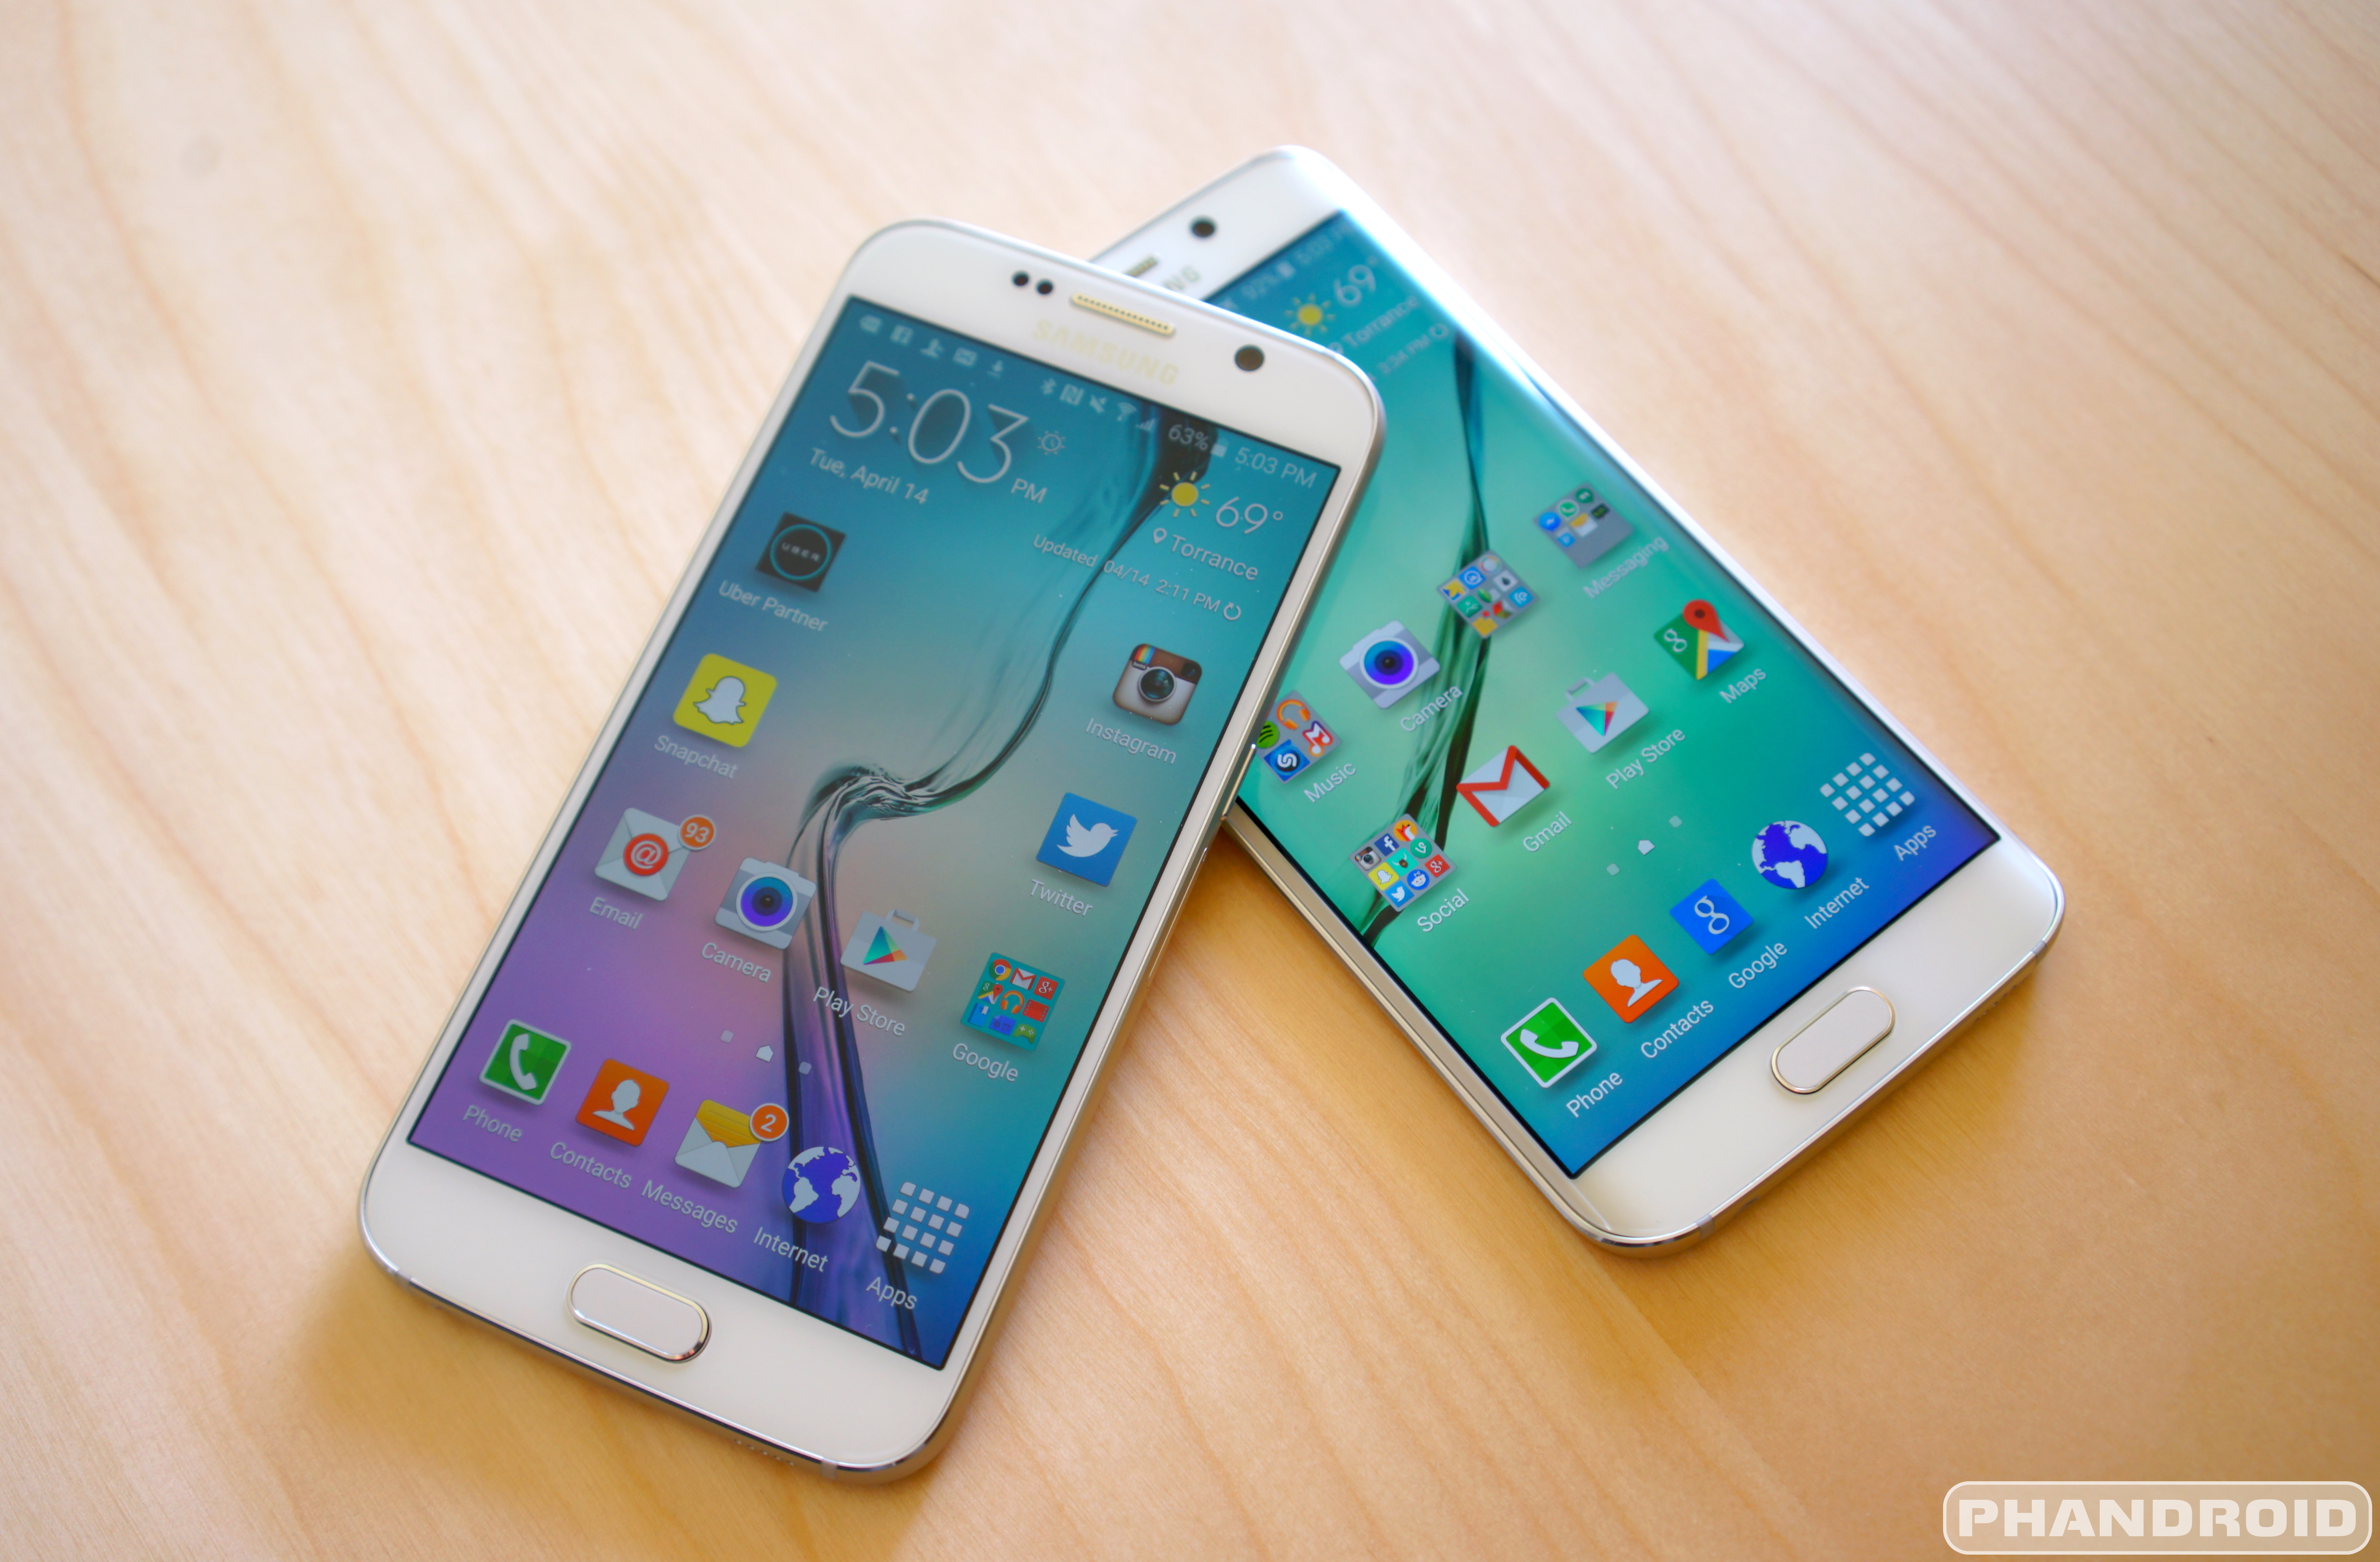 Phone What Is The Newest Android Phone things to do with your new android phone phandroid master device